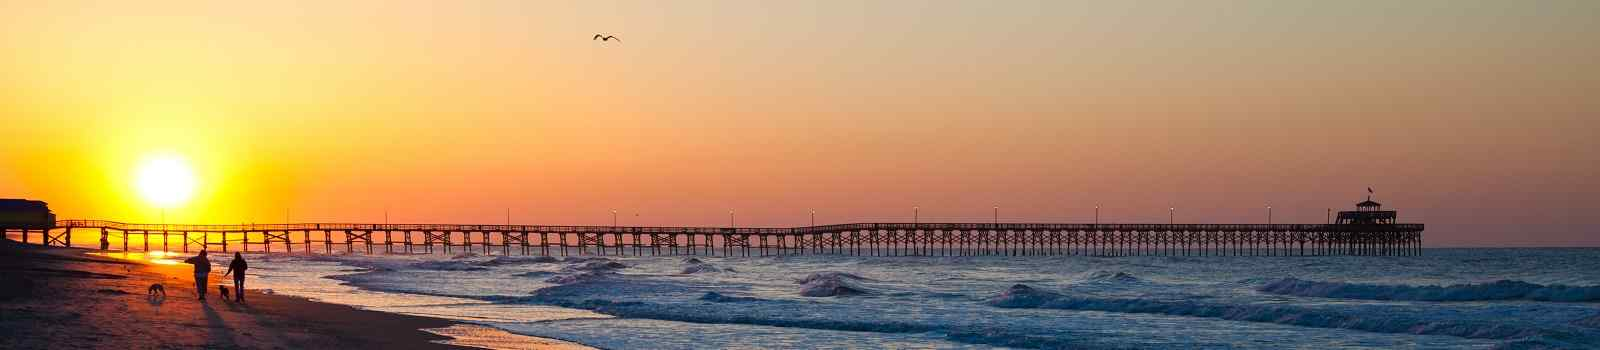 BEST-OF-SOUTH-CAROLINA  Suedstaaten SC pier North Myrtle Beach 115907683